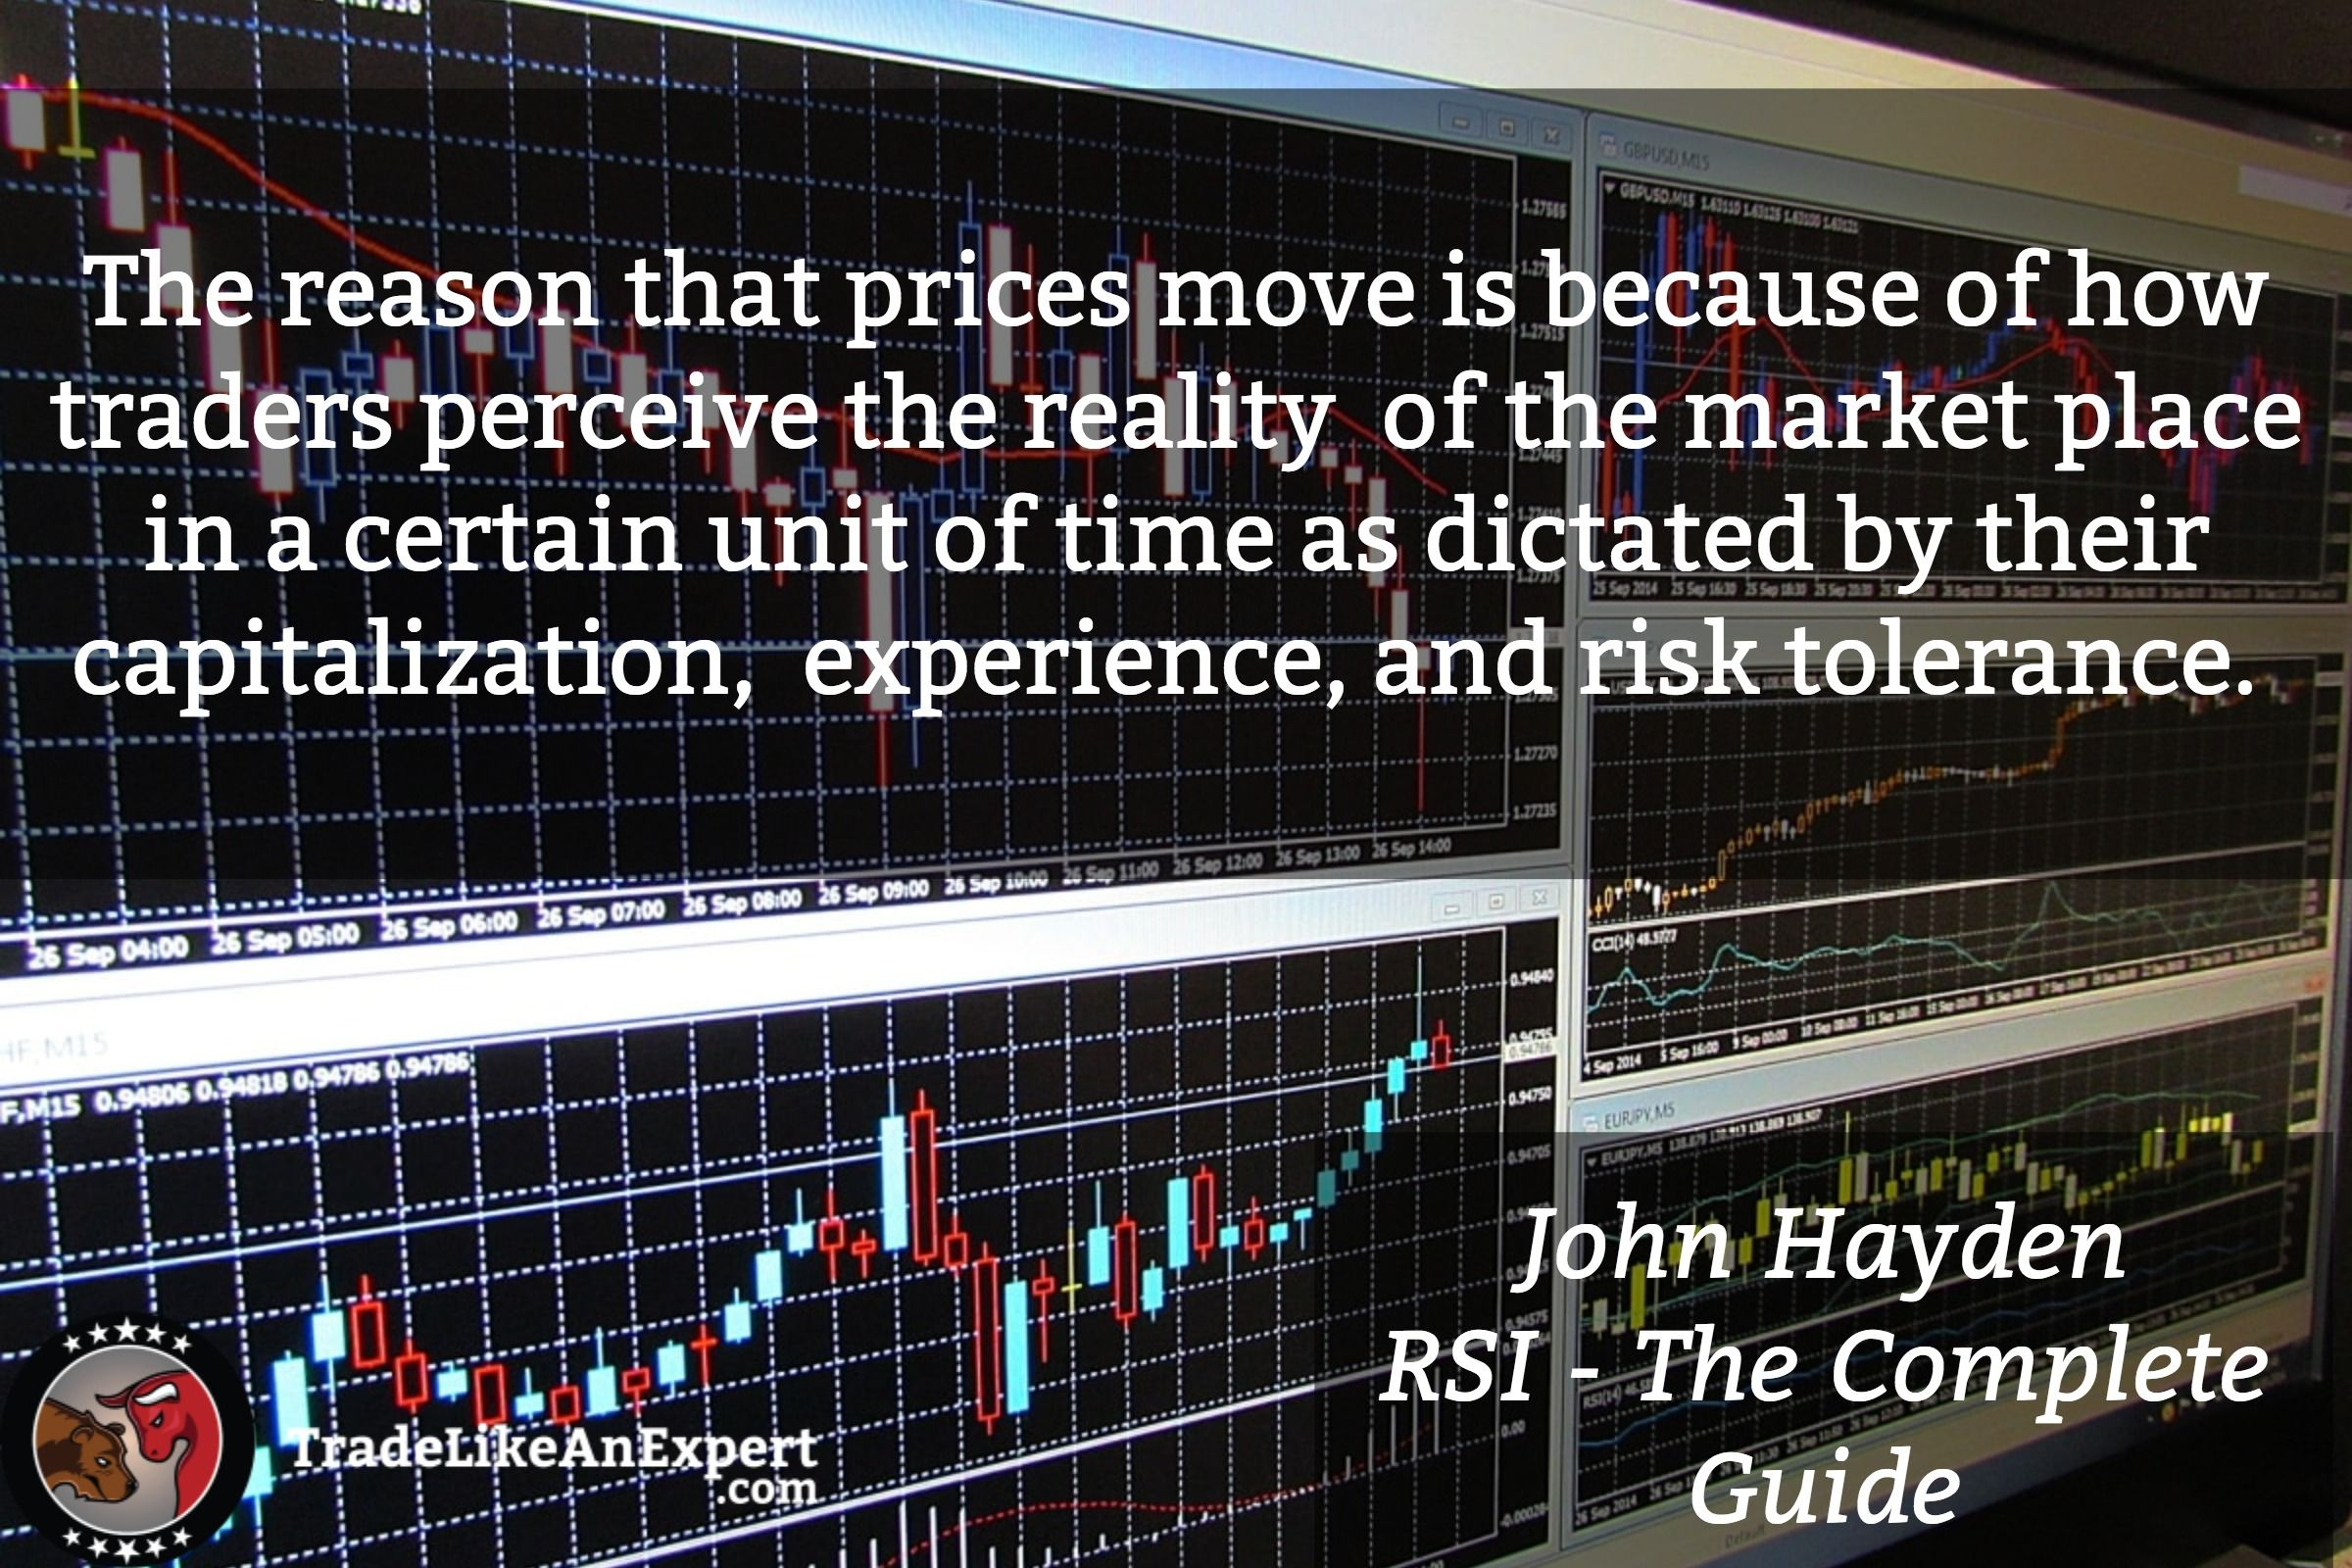 The Reason That Prices Move Is Because Of How Traders Perceive The